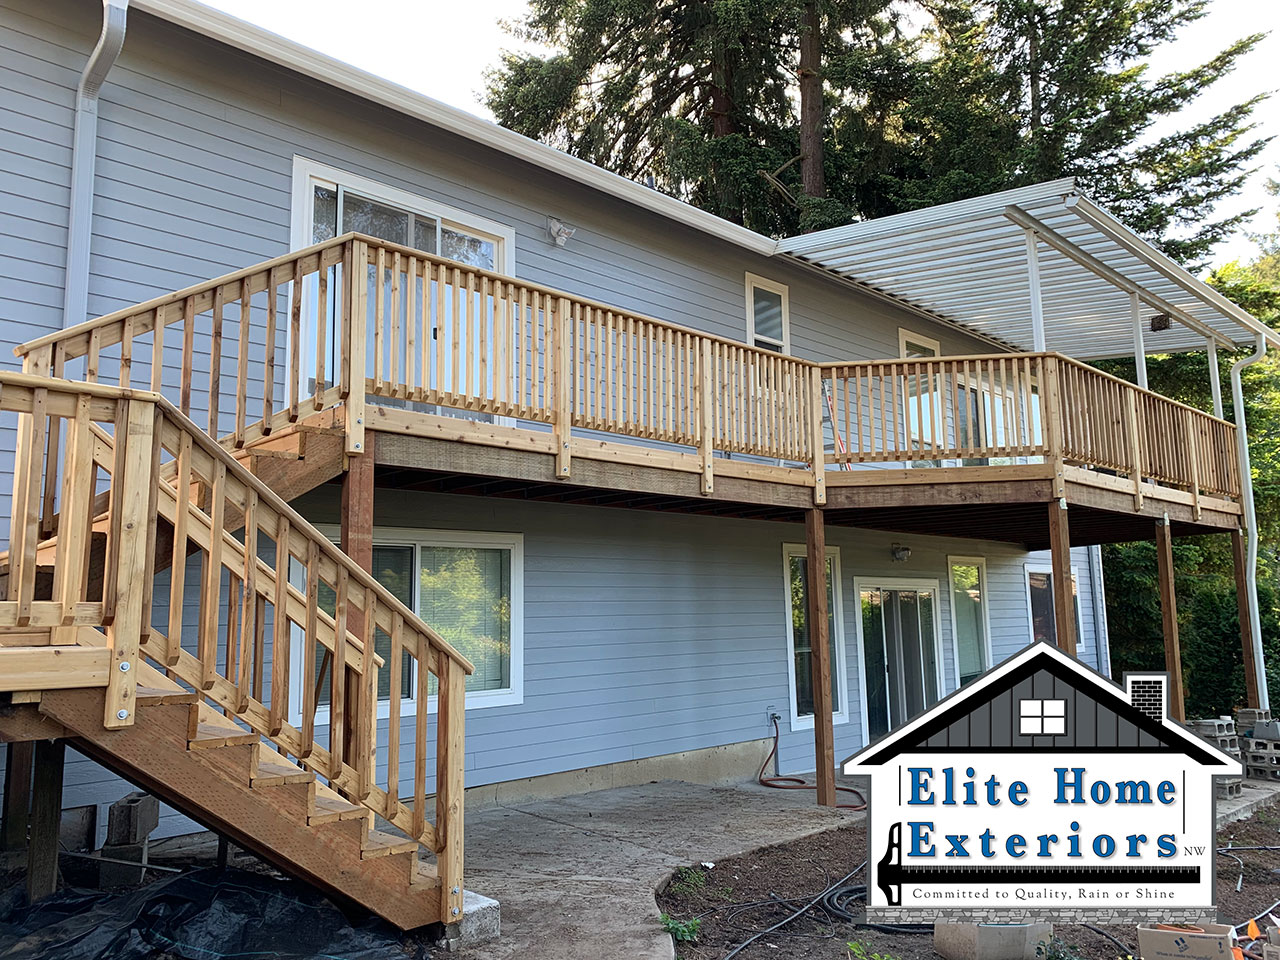 Cedar Deck Replacement James Hardie Fiber Cement Siding Replacement Lp And Vinyl Siding Milwaukie Or